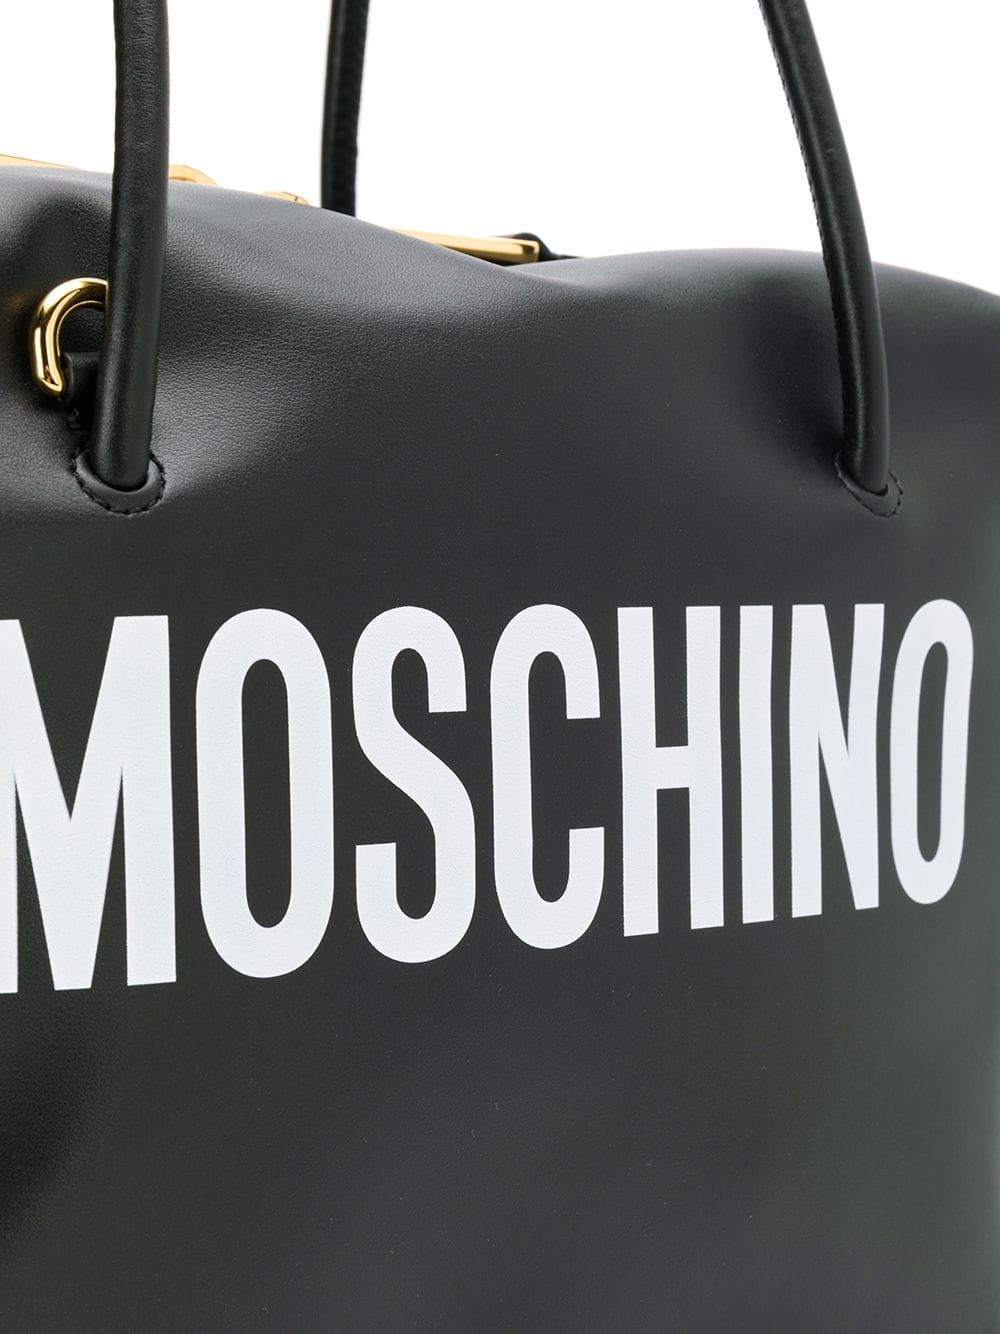 MOSCHINO WOMEN'S A742480011555 BLACK LEATHER SHOULDER BAG